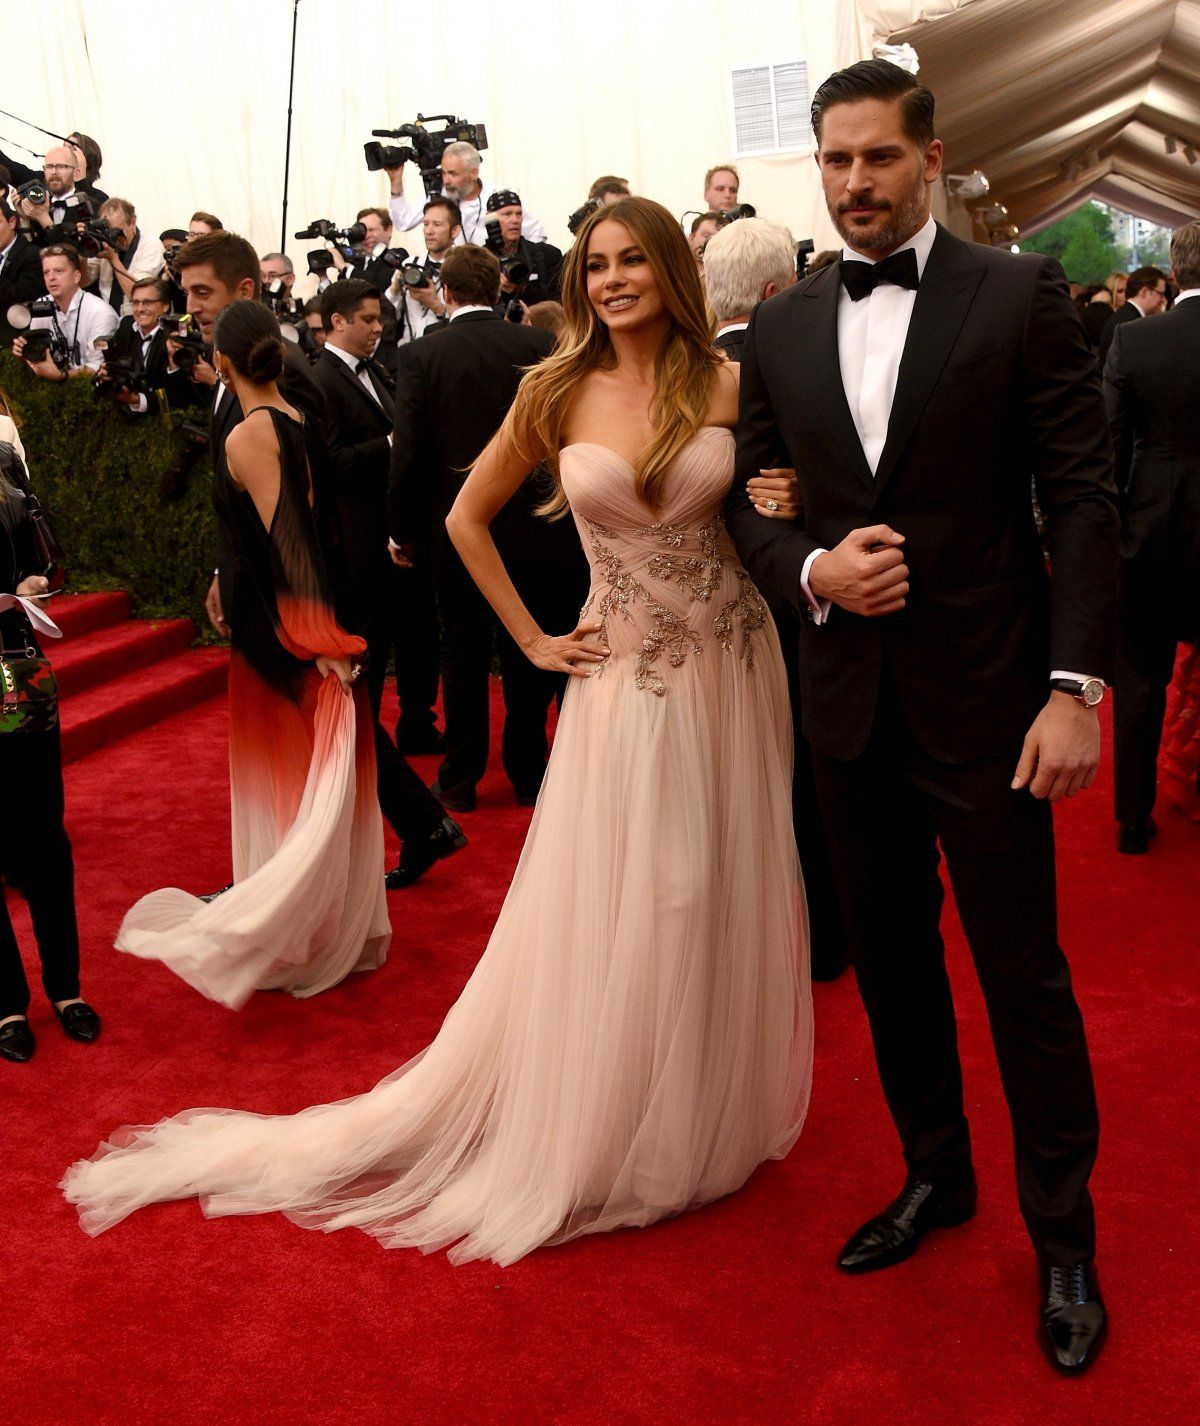 Met Ball 2015: Best and Worst Dressed - Business Insider